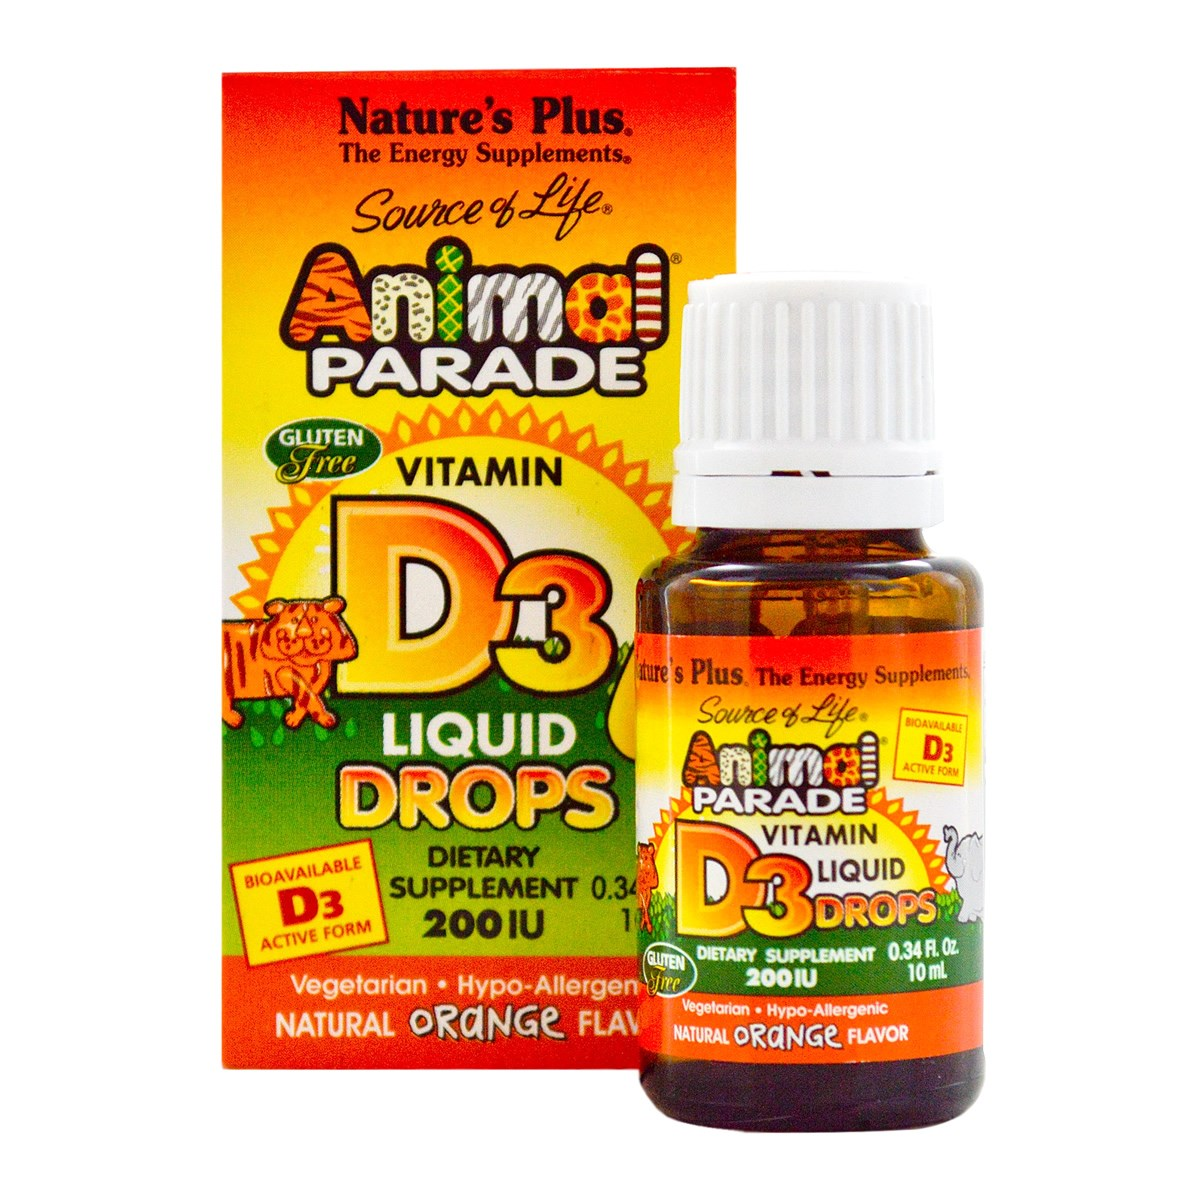 Natures Plus Source of Life Animal Parade Vitamin D3 200 IU Liquid Drops - Orange Flavour